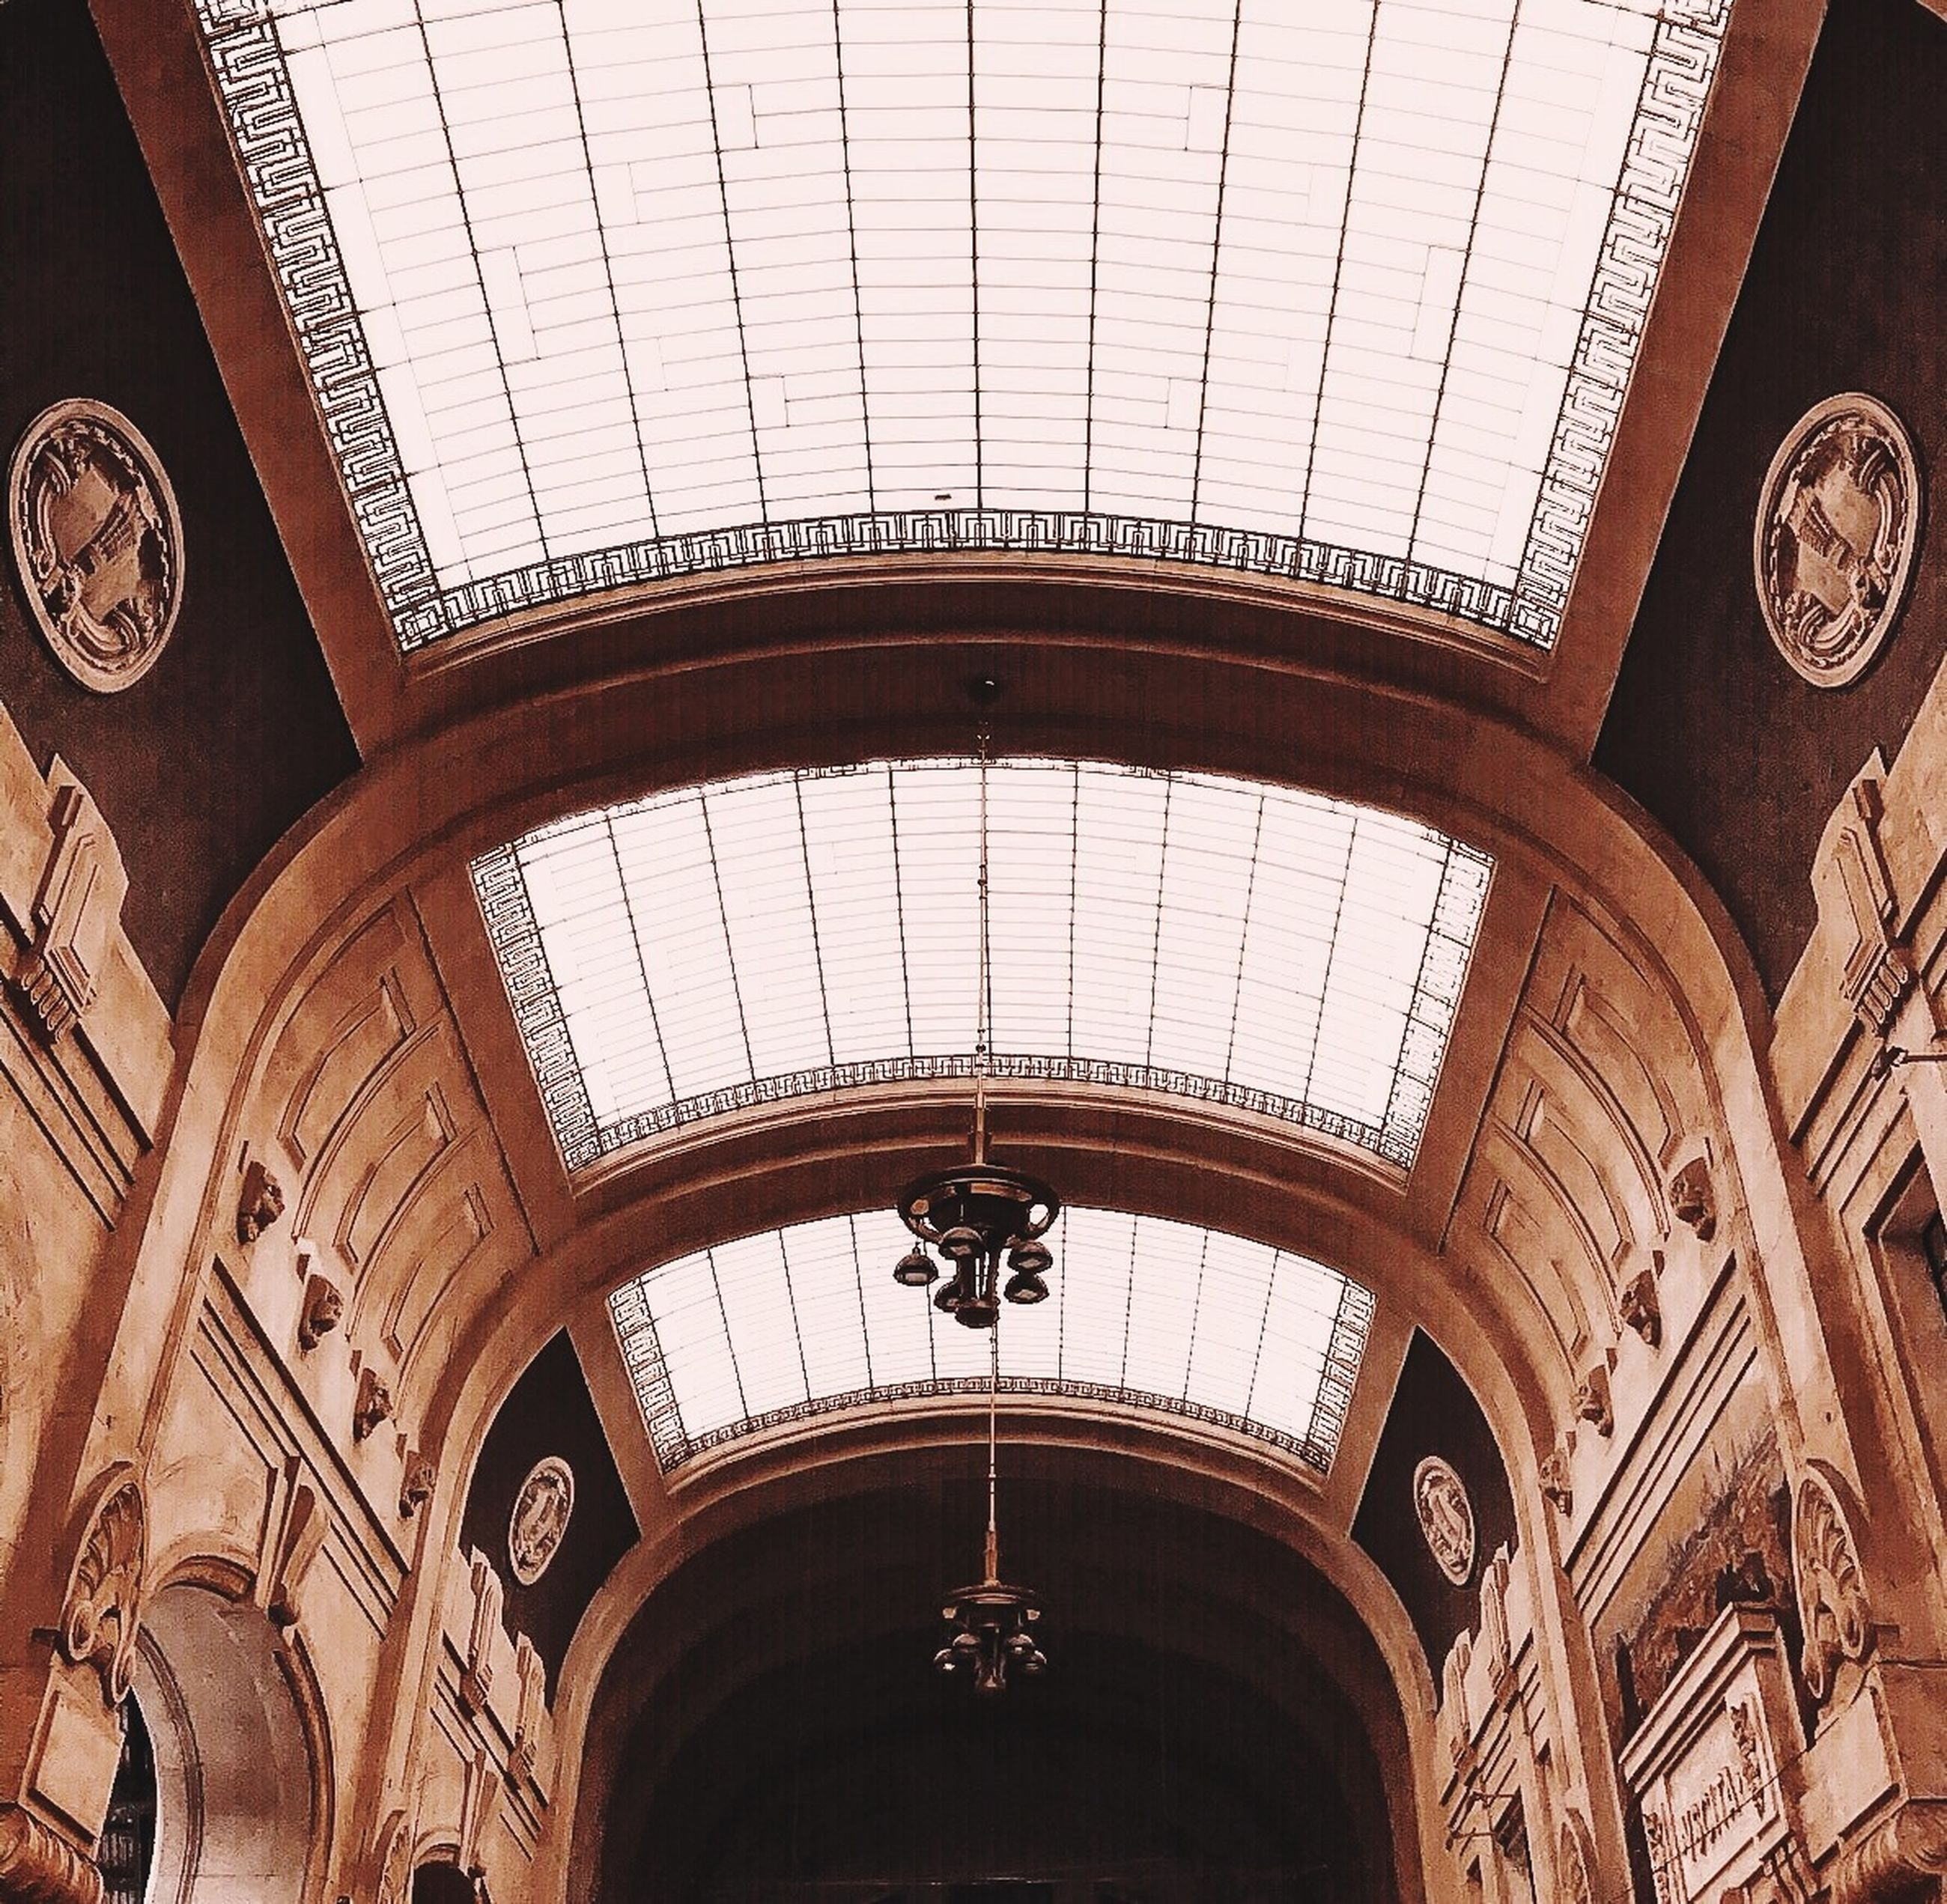 architecture, ceiling, indoors, built structure, ornate, low angle view, no people, day, courtroom